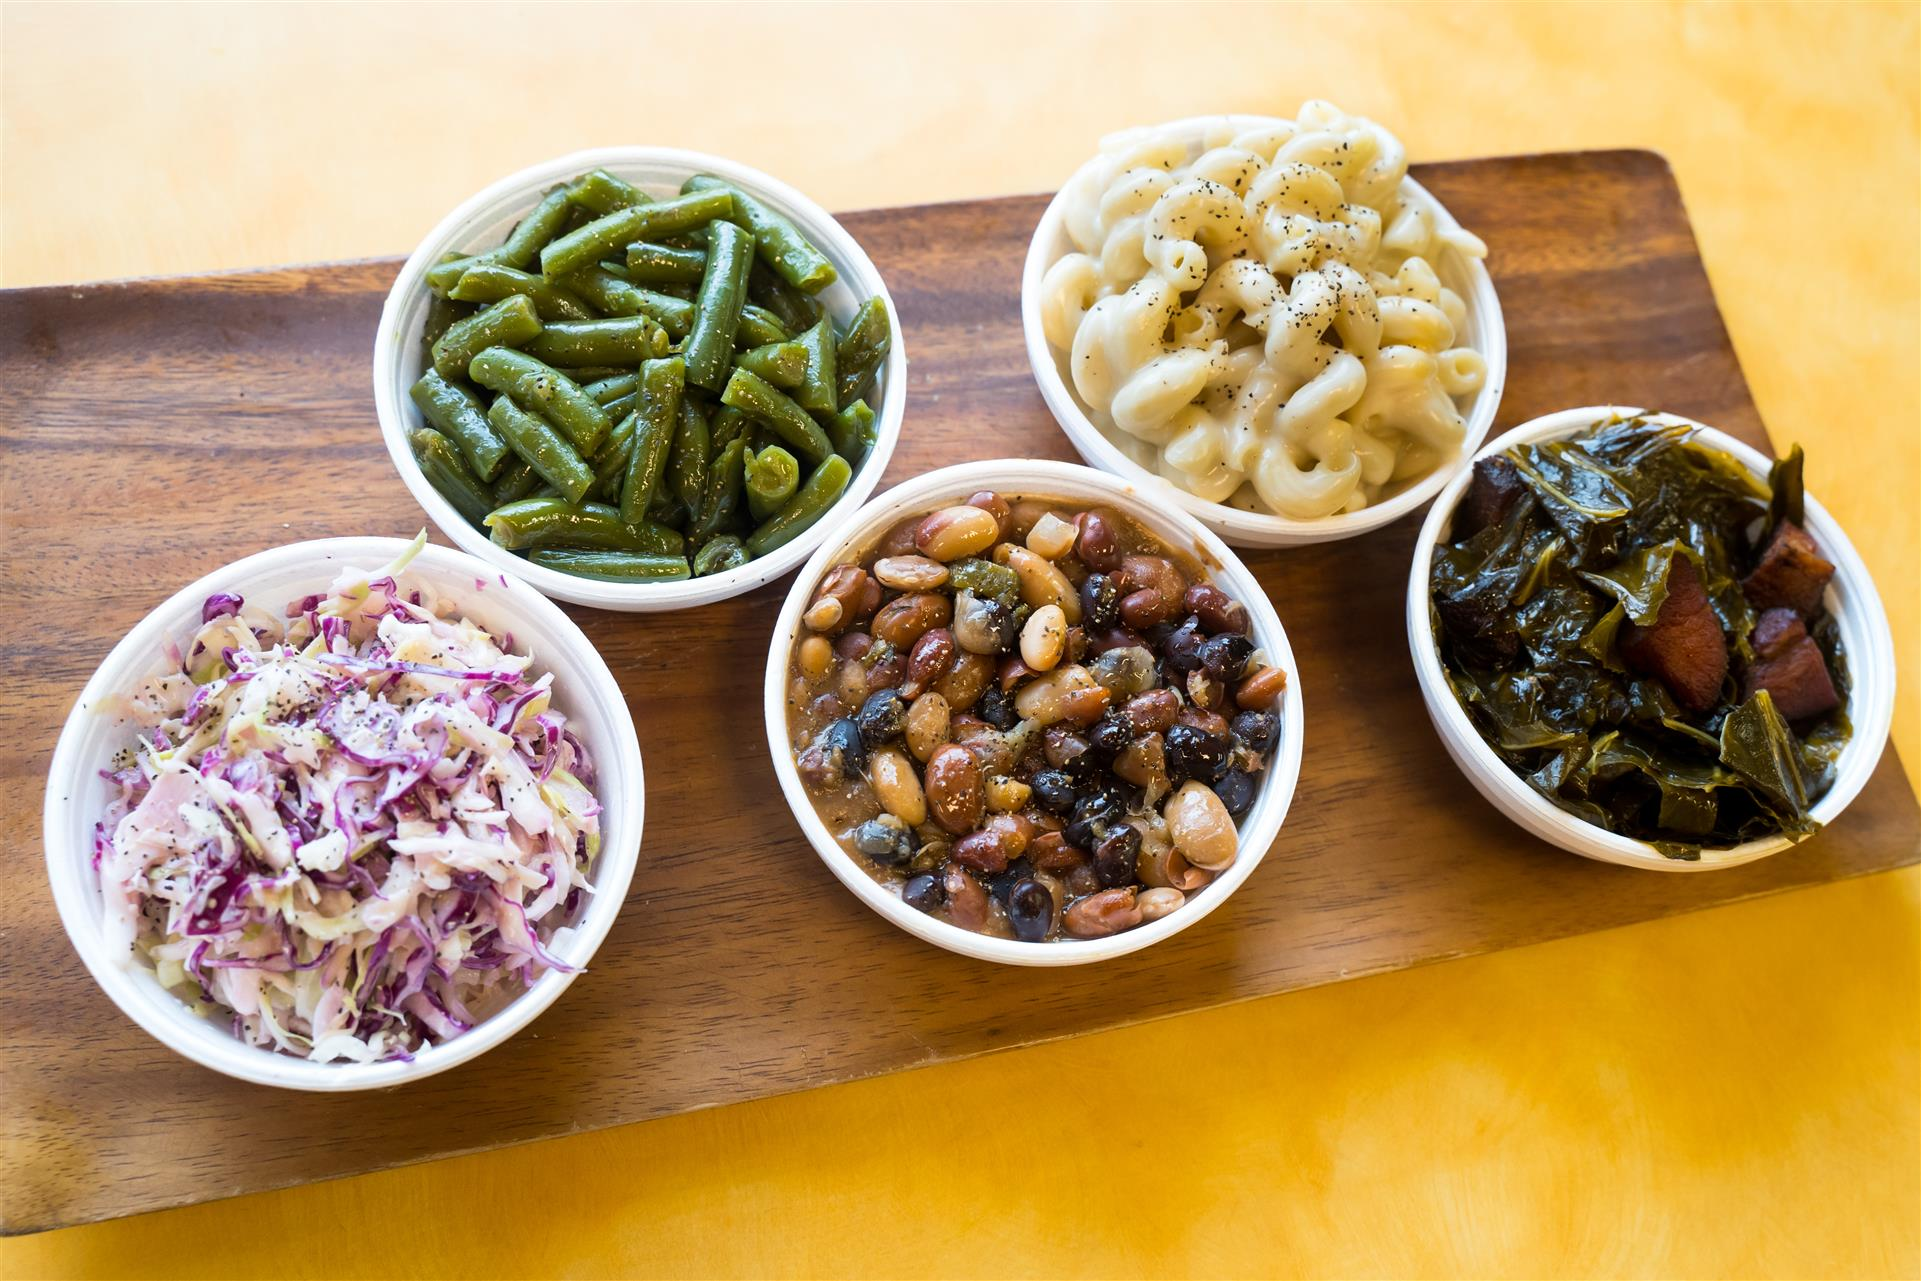 assortment of side dishes